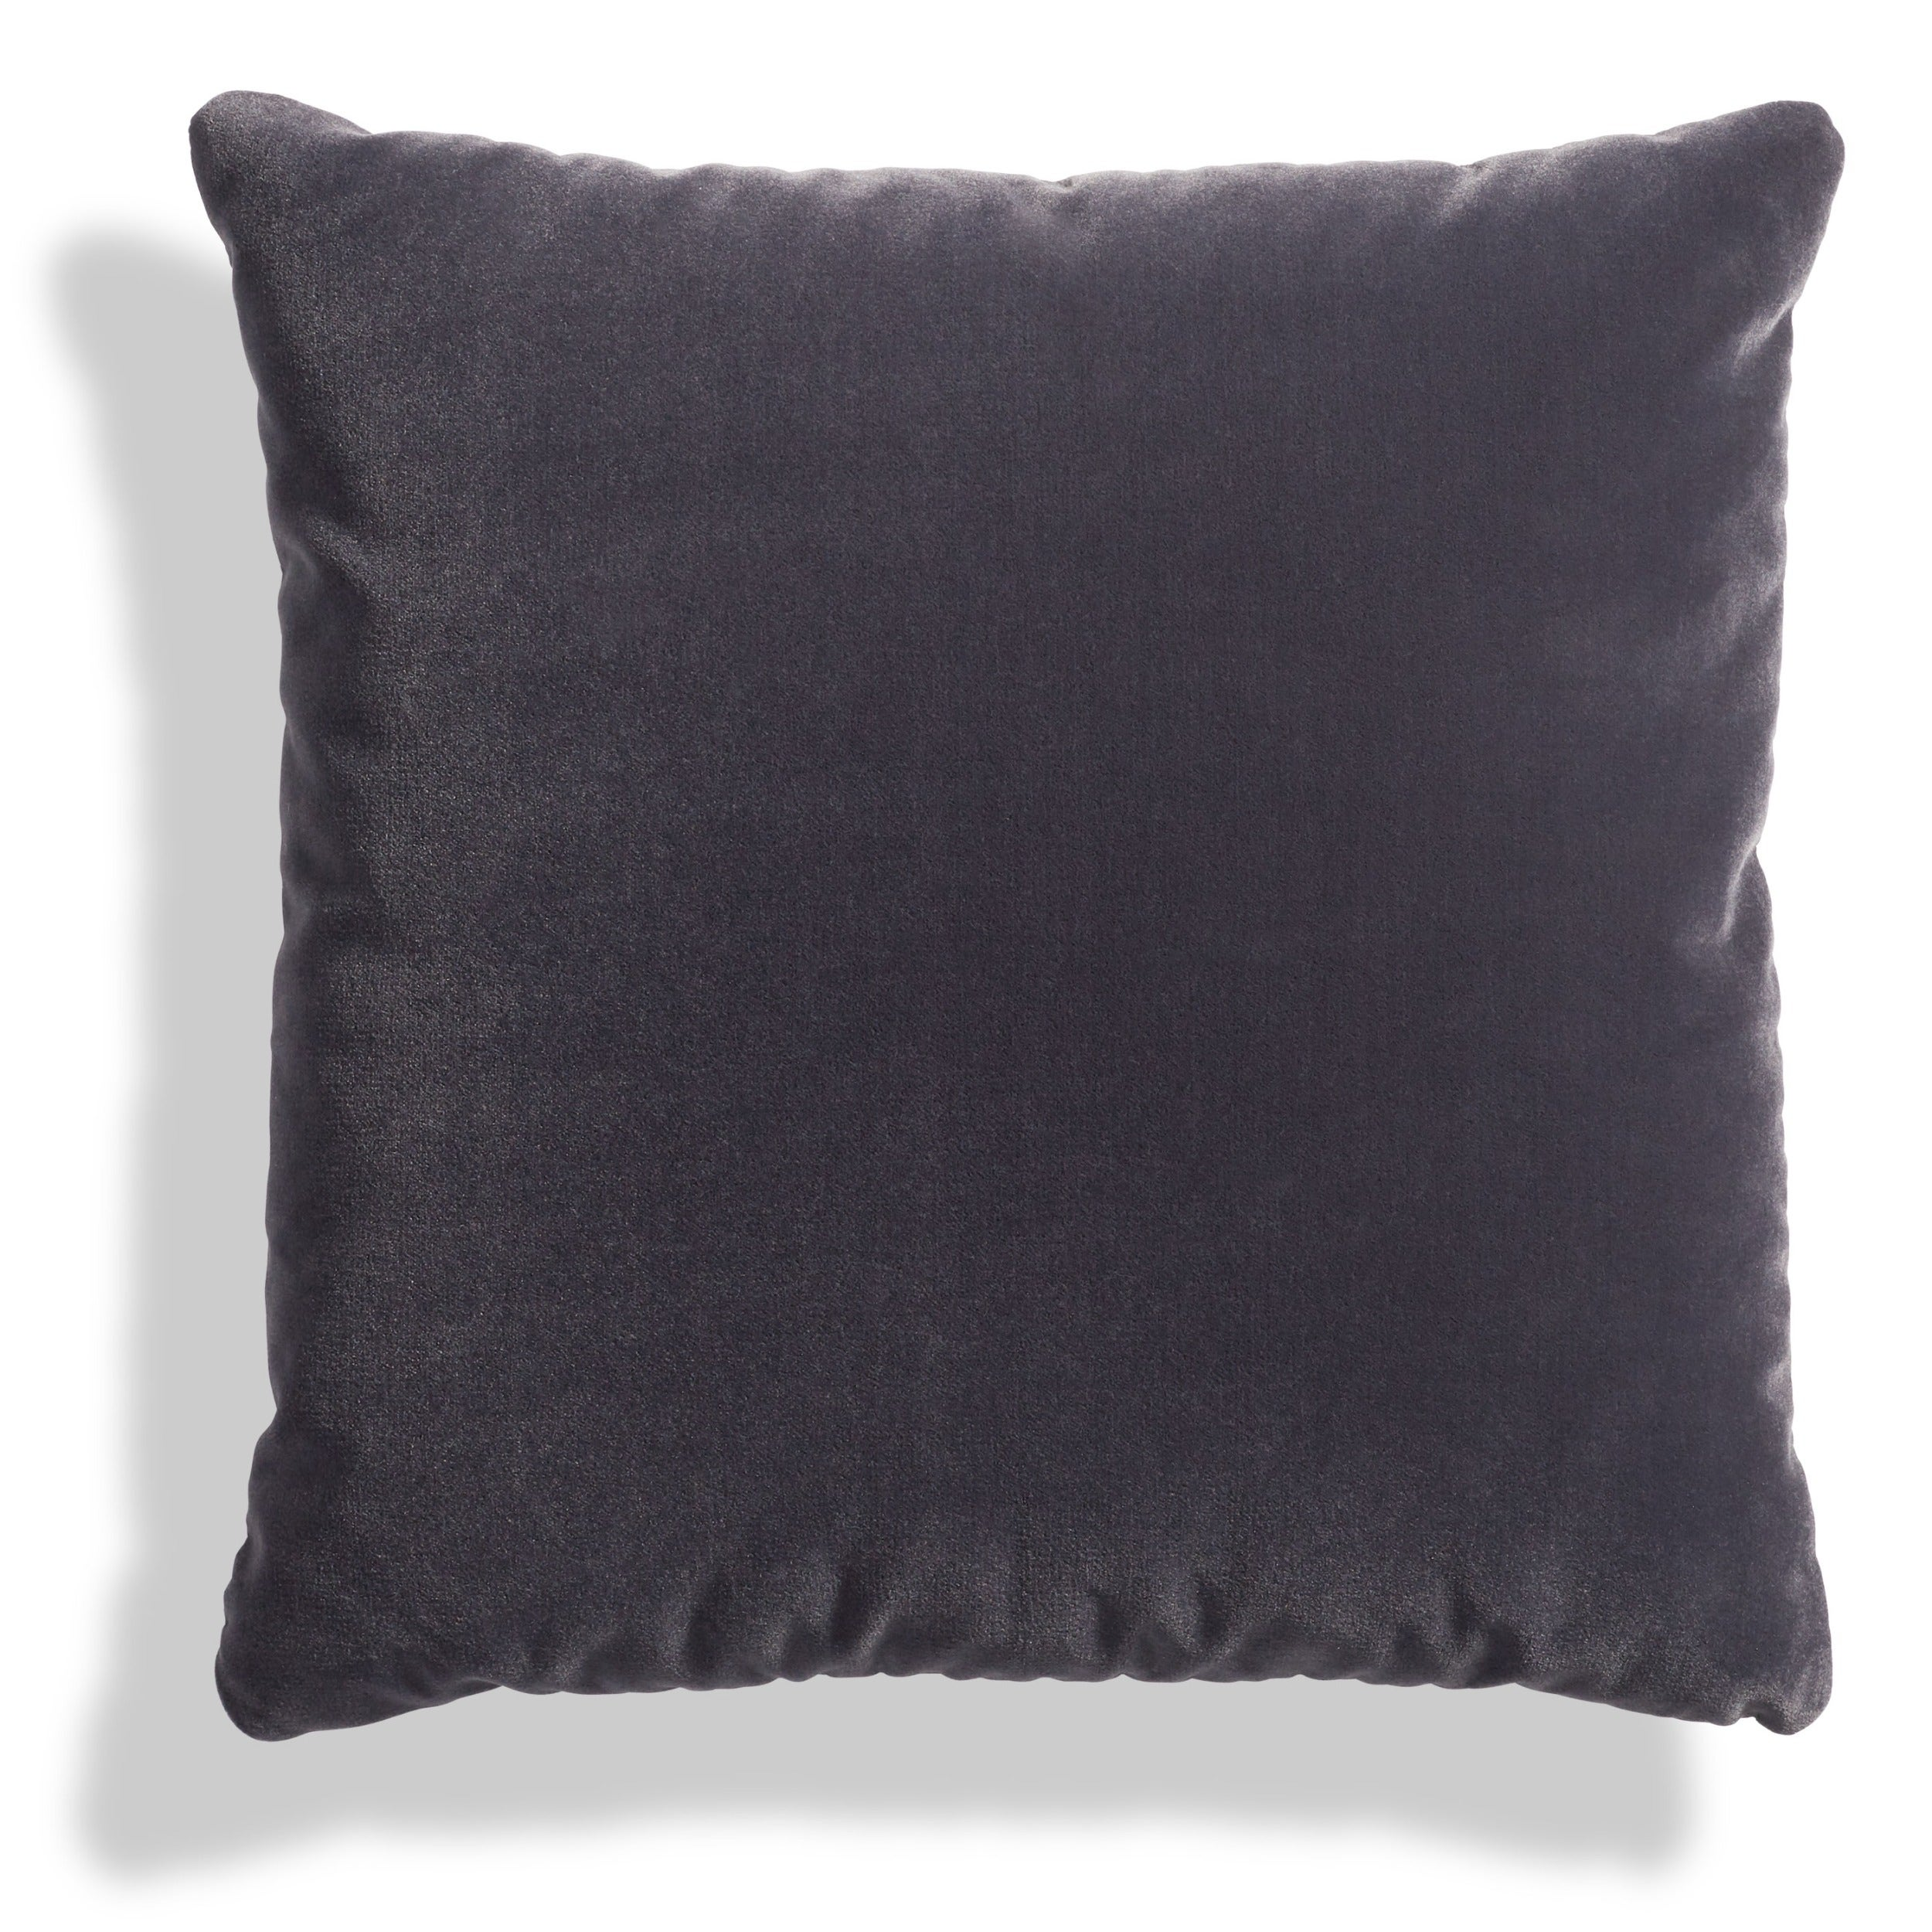 "Signal 20"" Square Pillow"